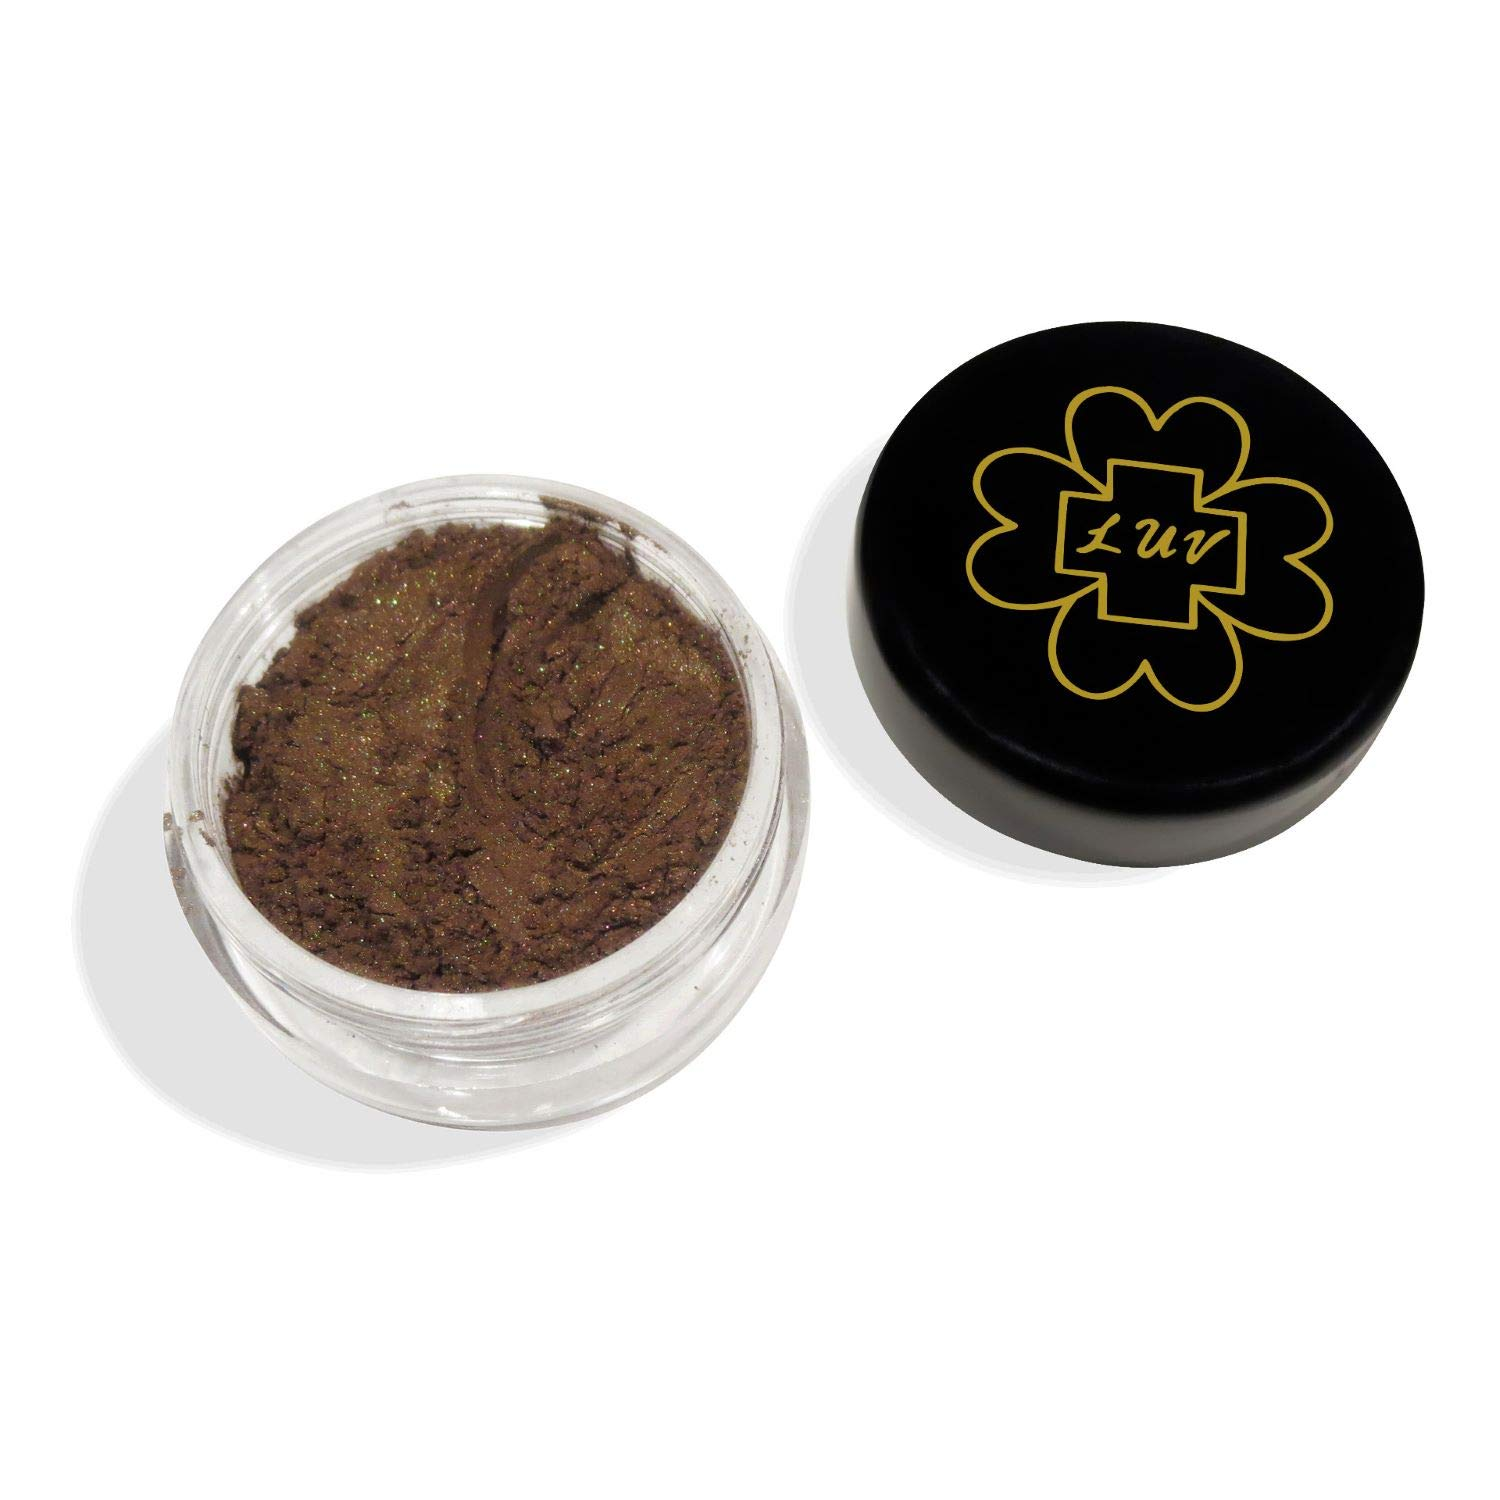 LUV+CO Amour Loose Mineral Pigment, Natural, Eyeshadow, Shimmer, Blush, Bronzer